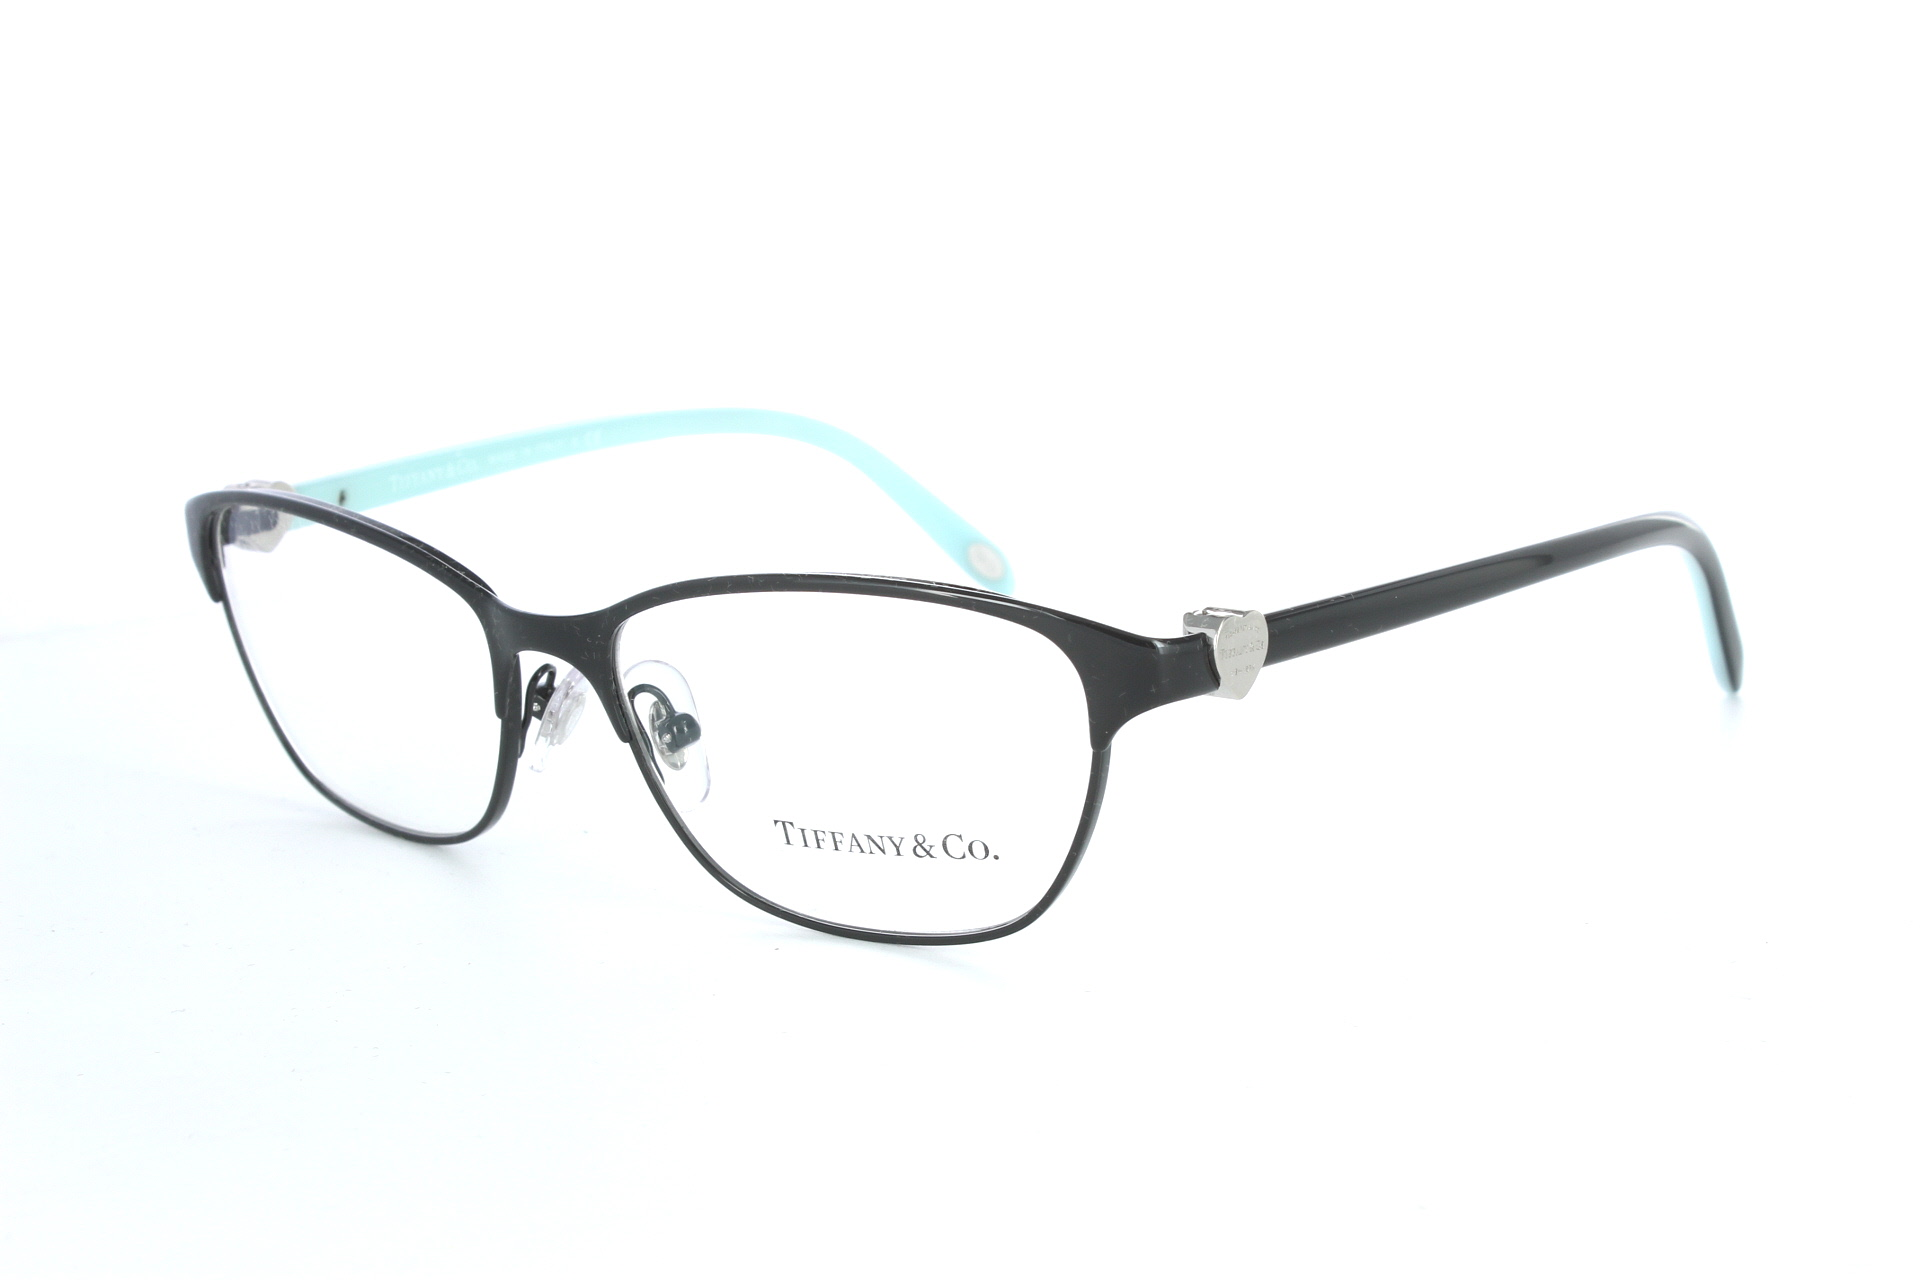 Tiffany Designer Eyeglass Frames : Tiffany & Co TF 1072 Tiffany & Co Designer Glasses